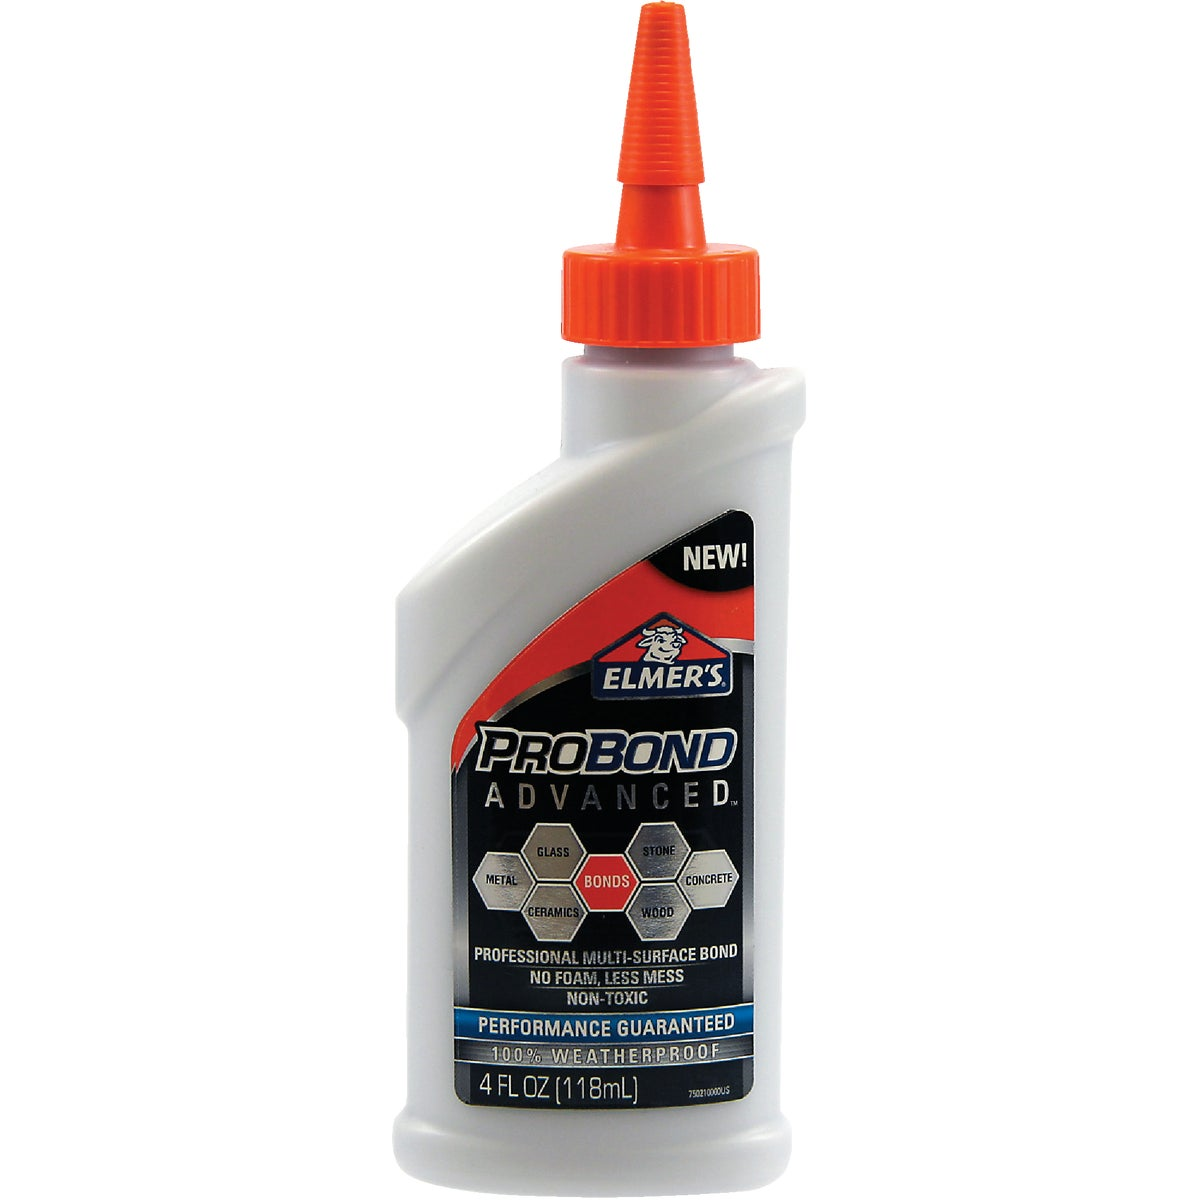 4OZ PROBONDADVANCED GLUE - E7502 by Elmers Products Inc